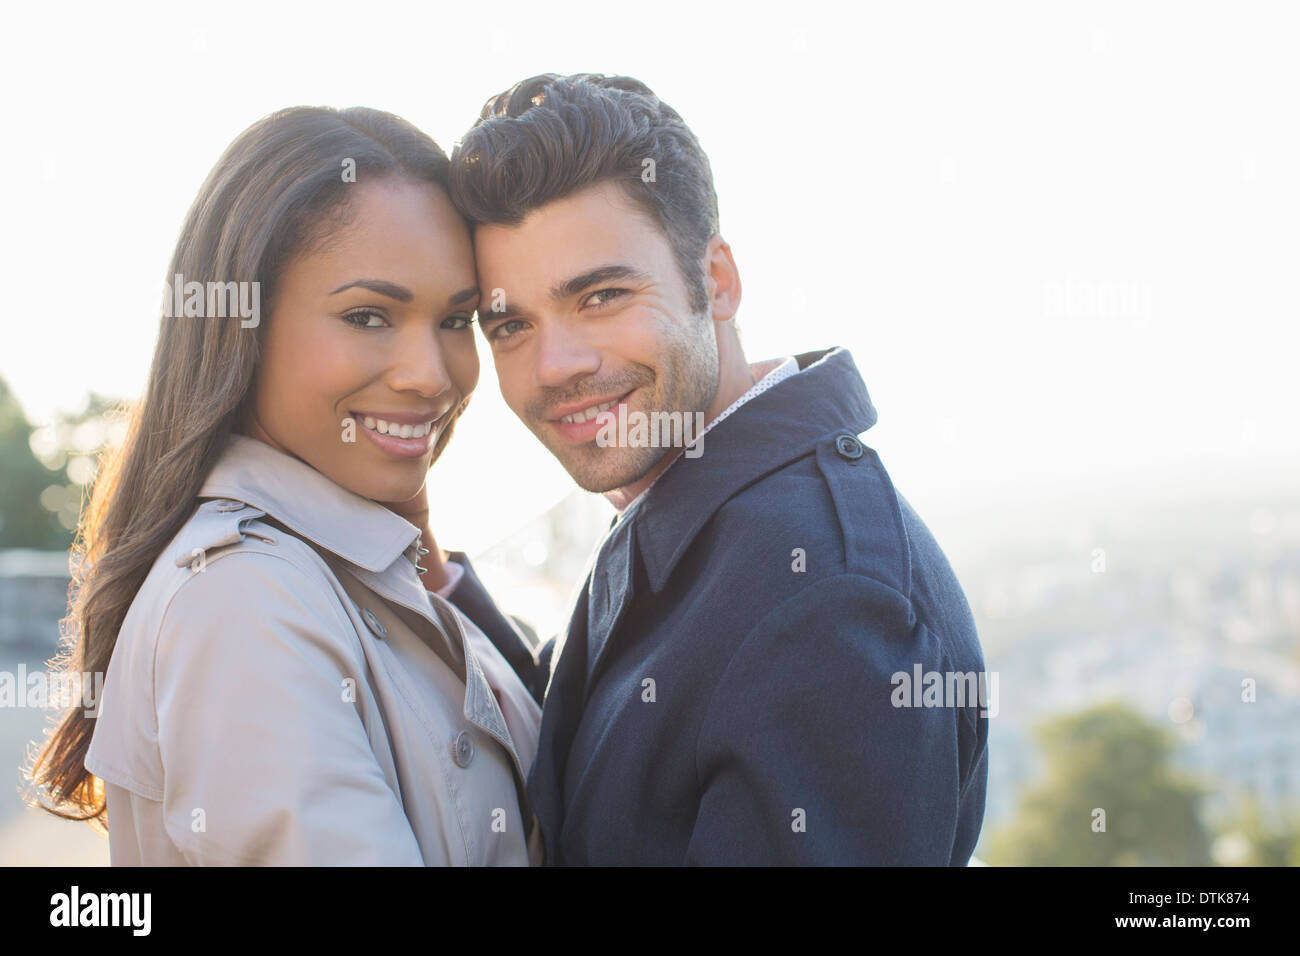 Couple in trench coats hugging - Stock Image